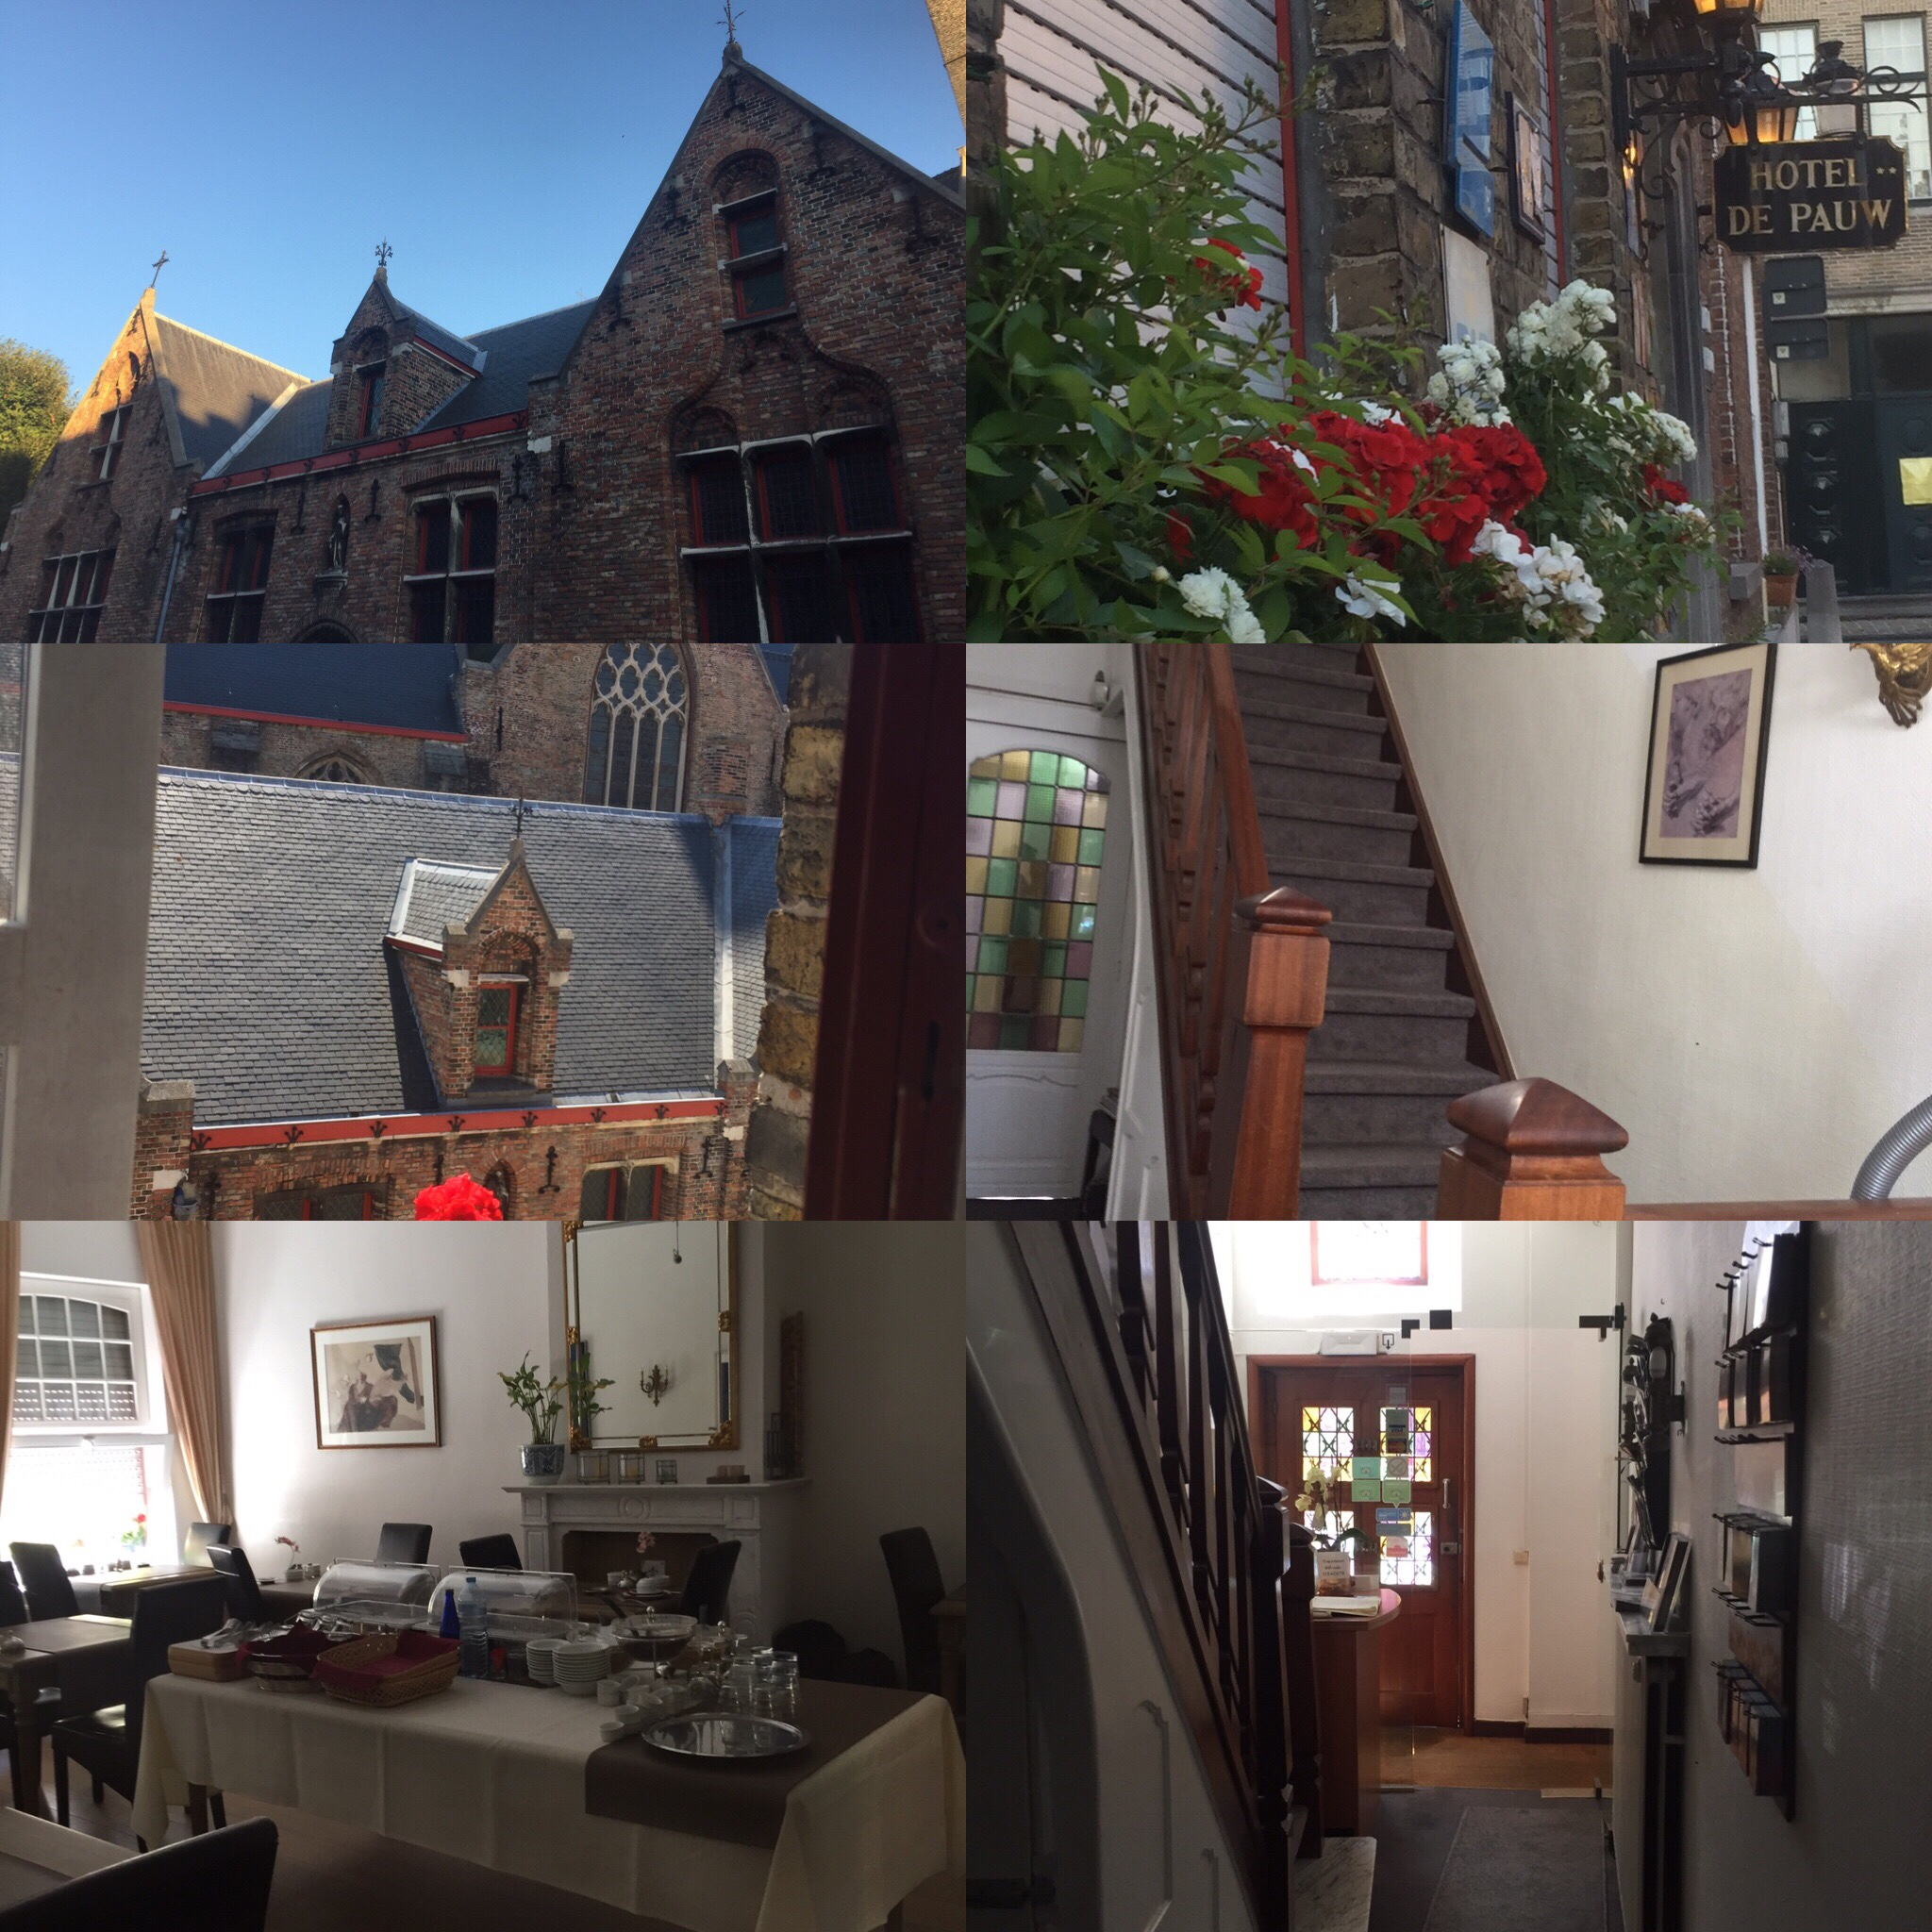 Hote de Paul in Belgium Bruges is small but charming